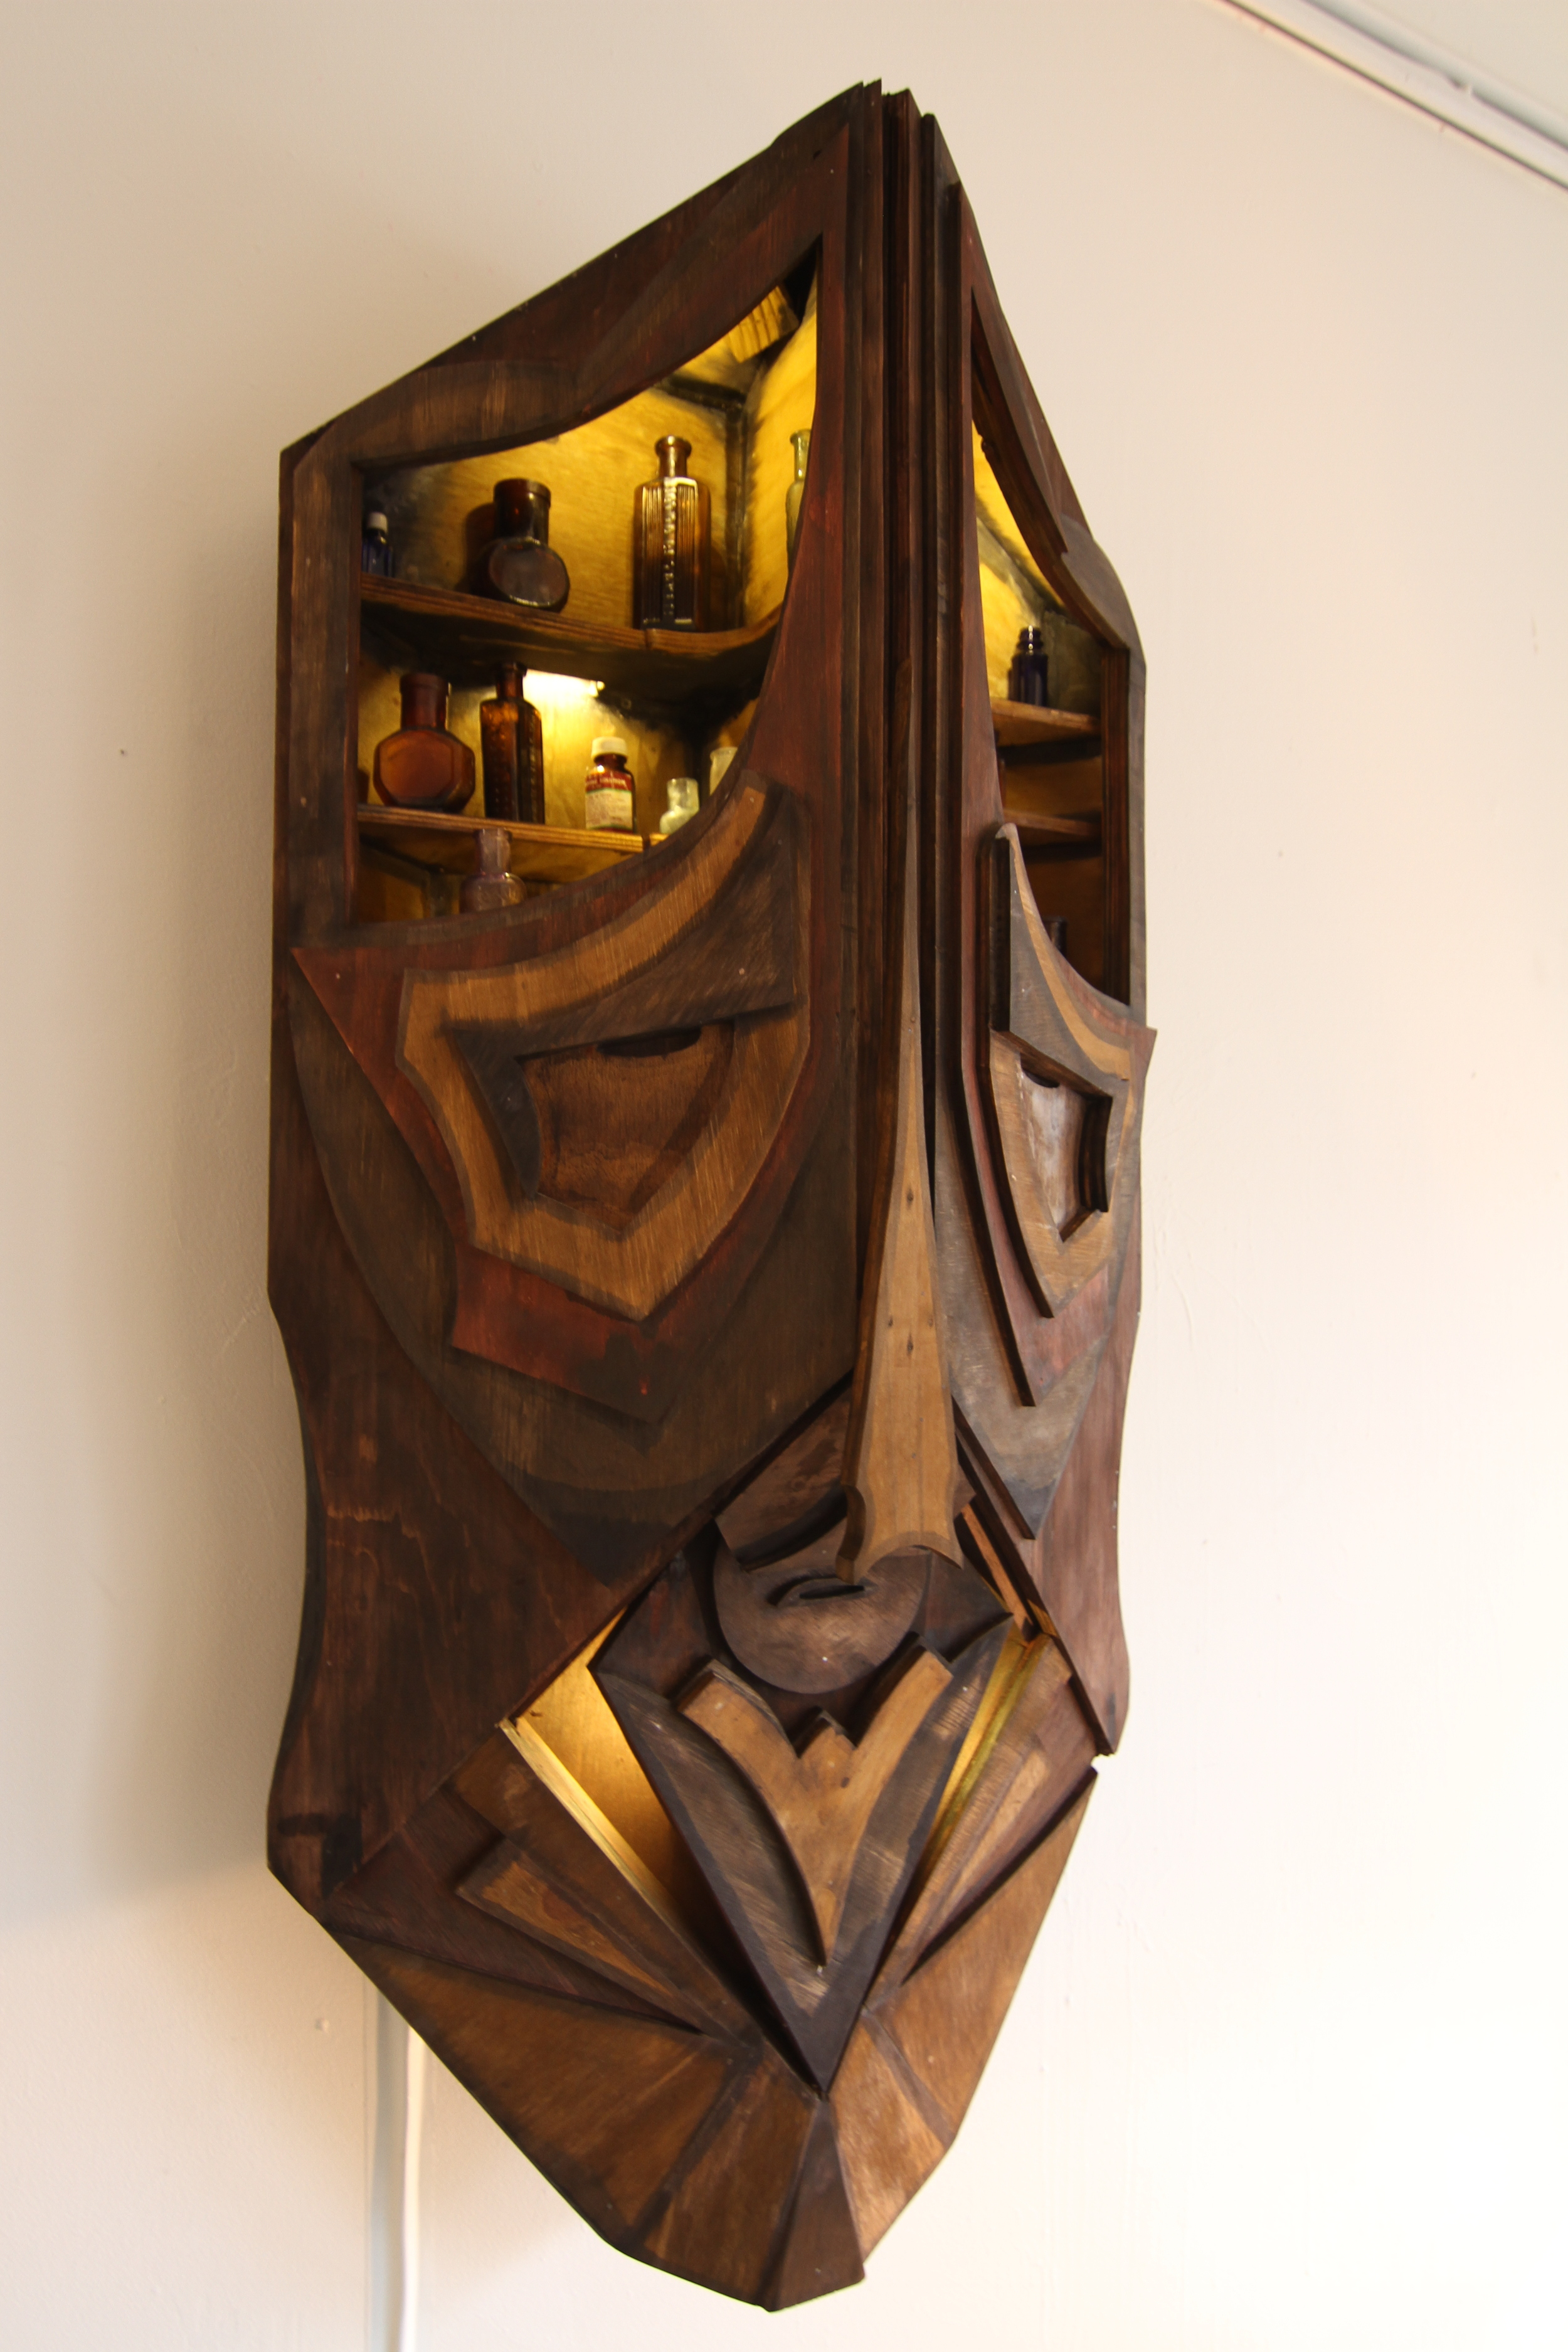 2012, Timber, found objects, LED, oil stain, 120x60x30cm, Photograph by Michael Herman